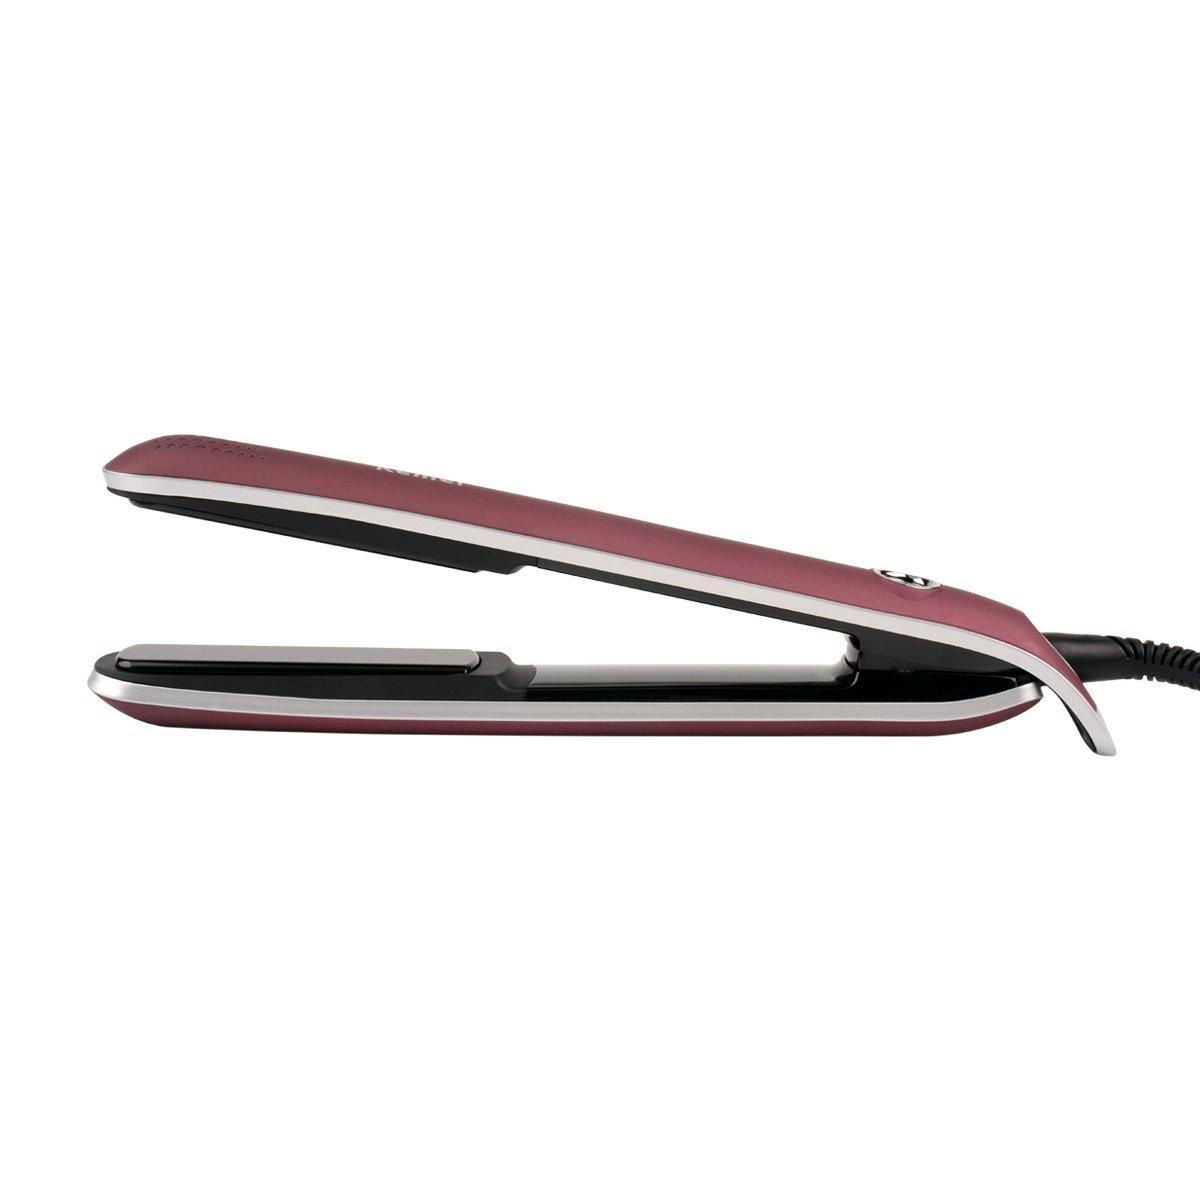 Ckeyin Professional Tourmaline Ceramic Hair Straightener Flat Iron Straightening Irons Styling Tools